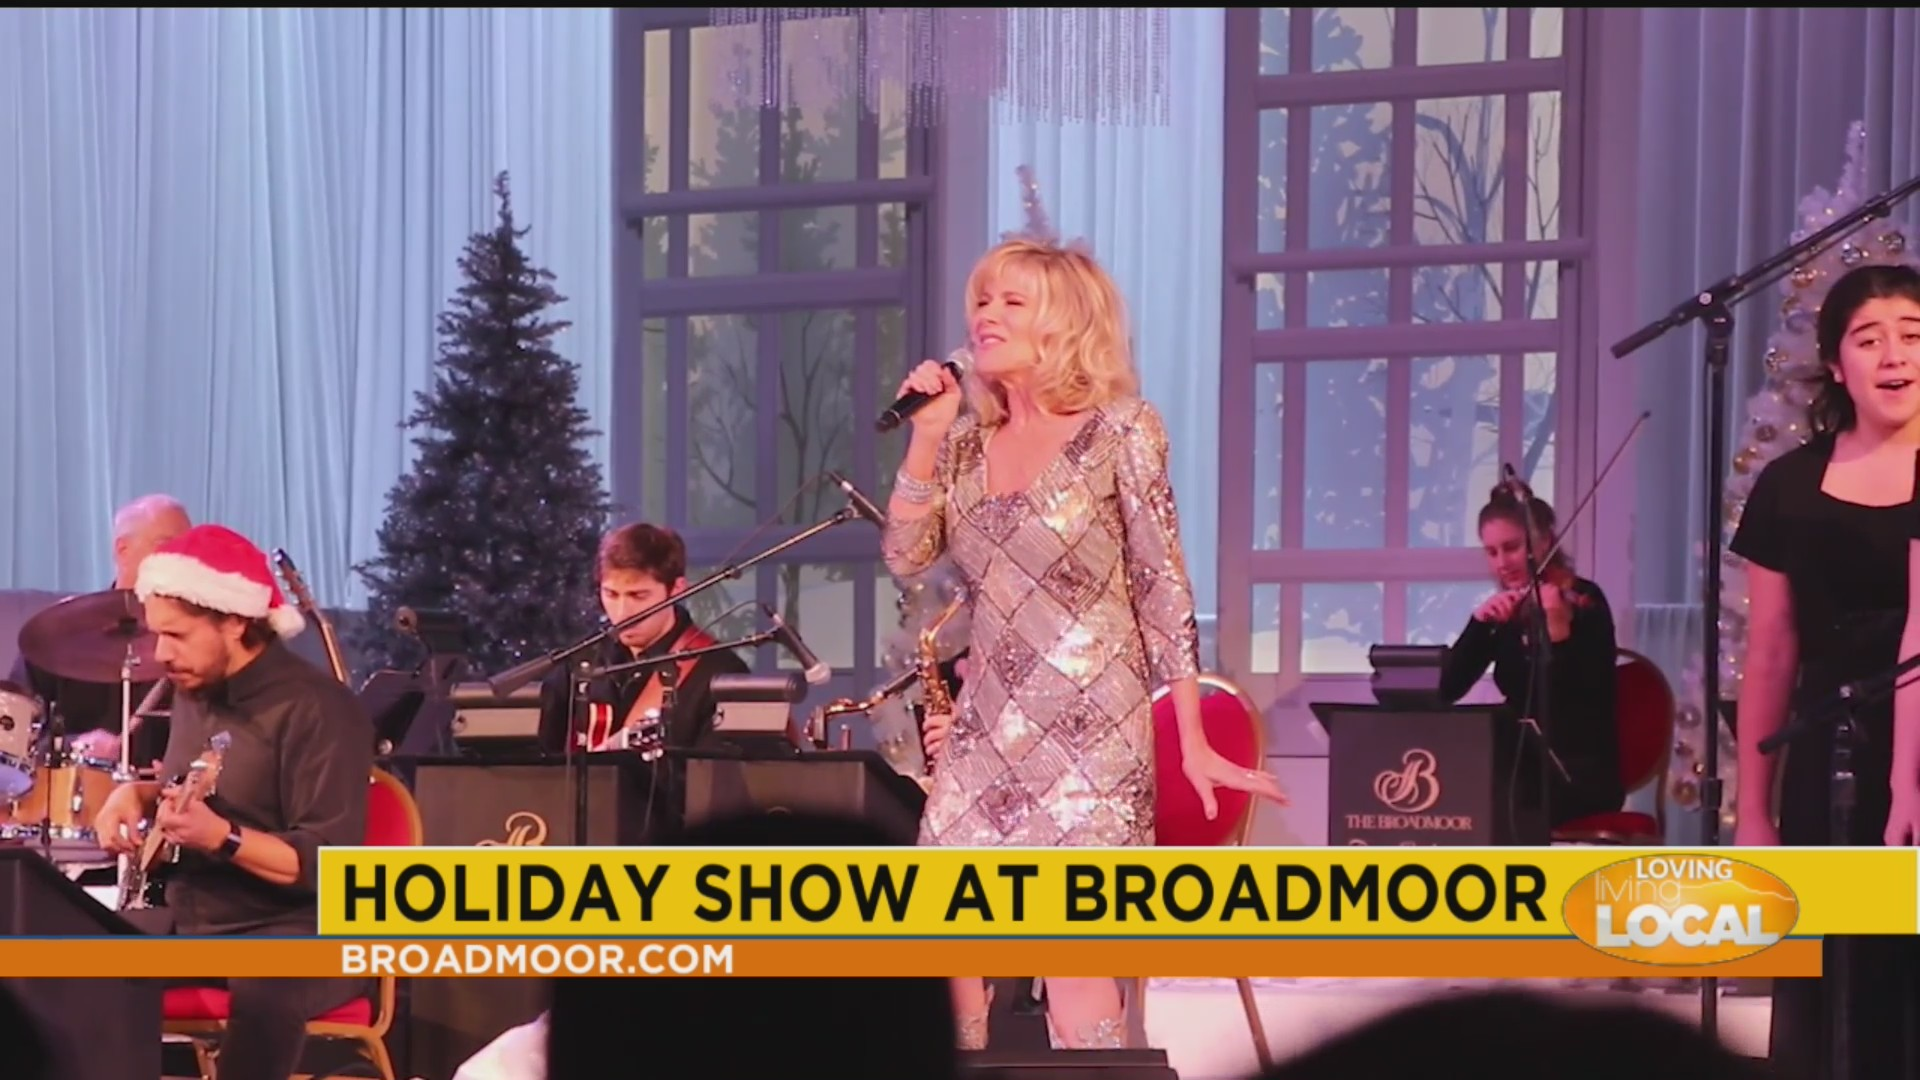 Broadmoor Christmas Show 2020 It's a magical Holiday Show at the Broadmoor with headliner Debby